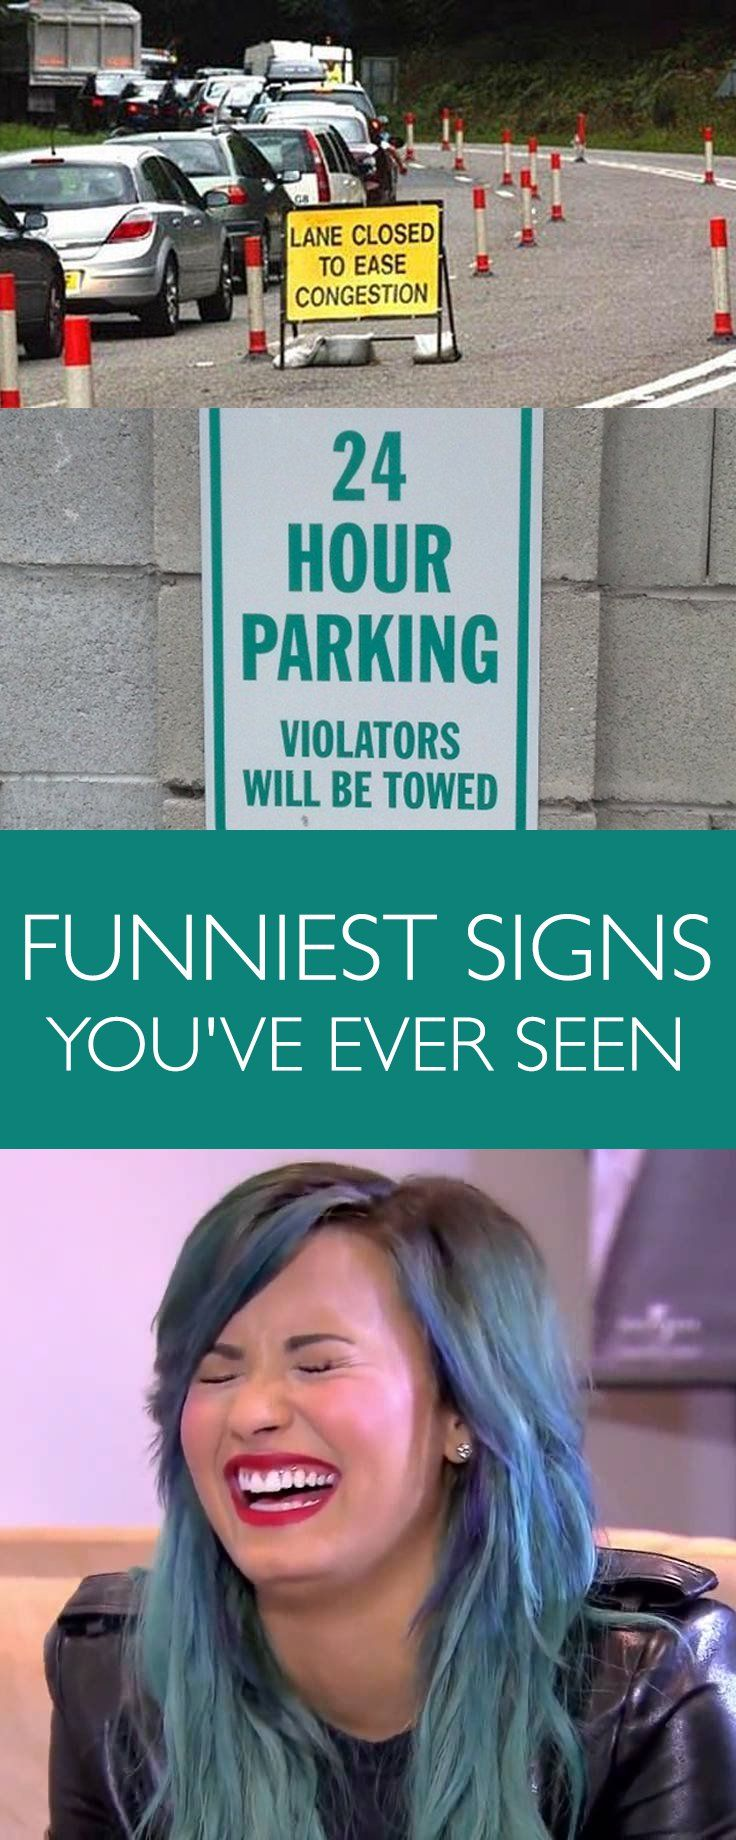 Do you want to have a giggle? Look at these funny signs and you will have a barrel of laughs!